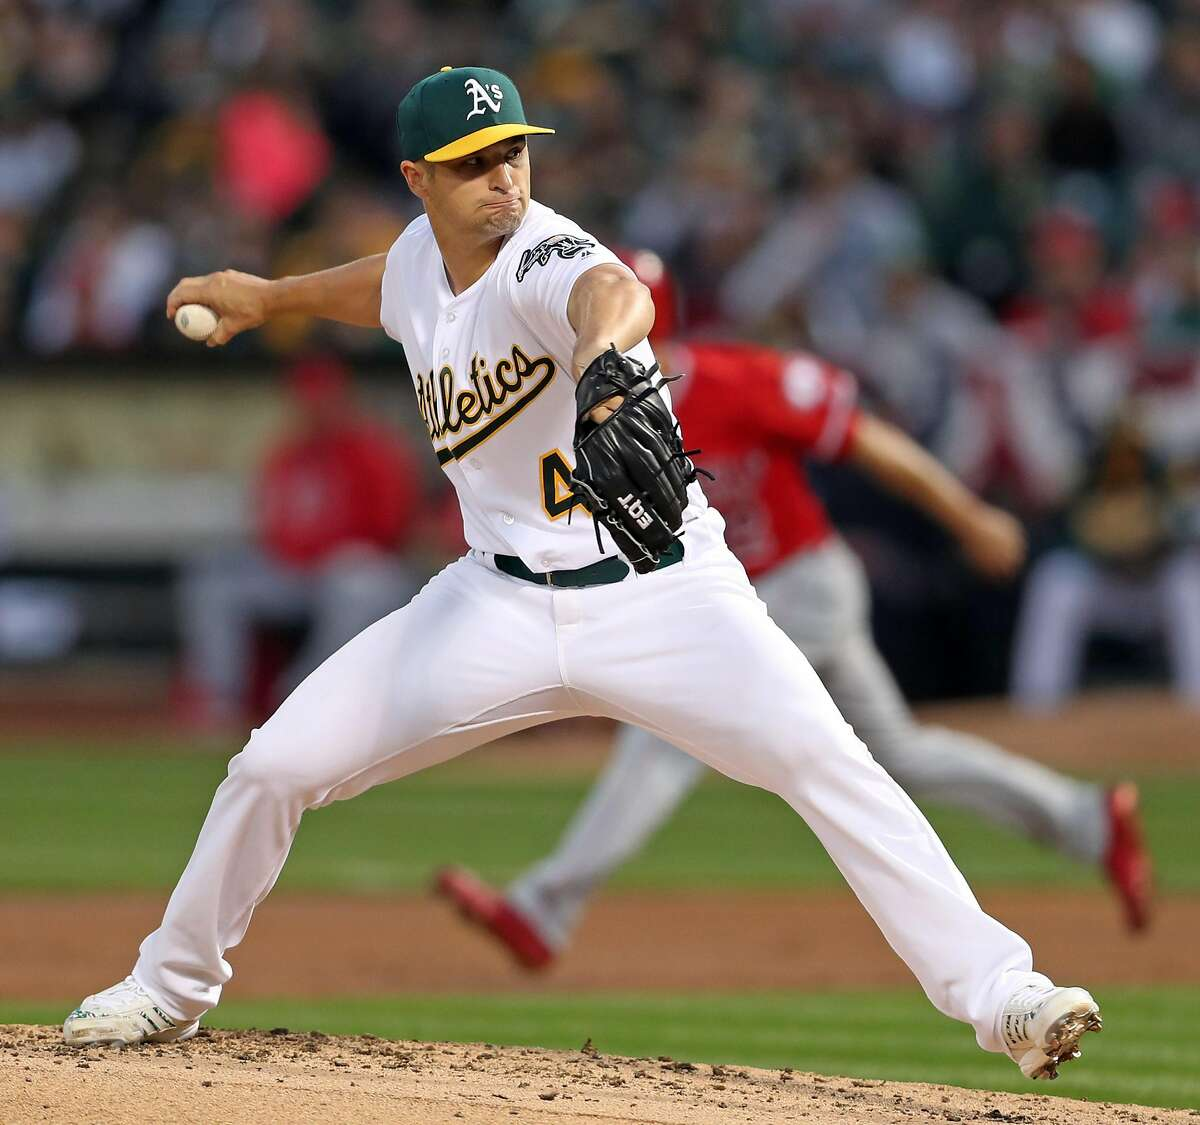 Oakland Athletics' Kendall Graveman delivers in 3rd inning against Anaheim Angels during A's home opener at the Oakland Coliseum in Oakland, Calif., on Monday, April 3, 2017.